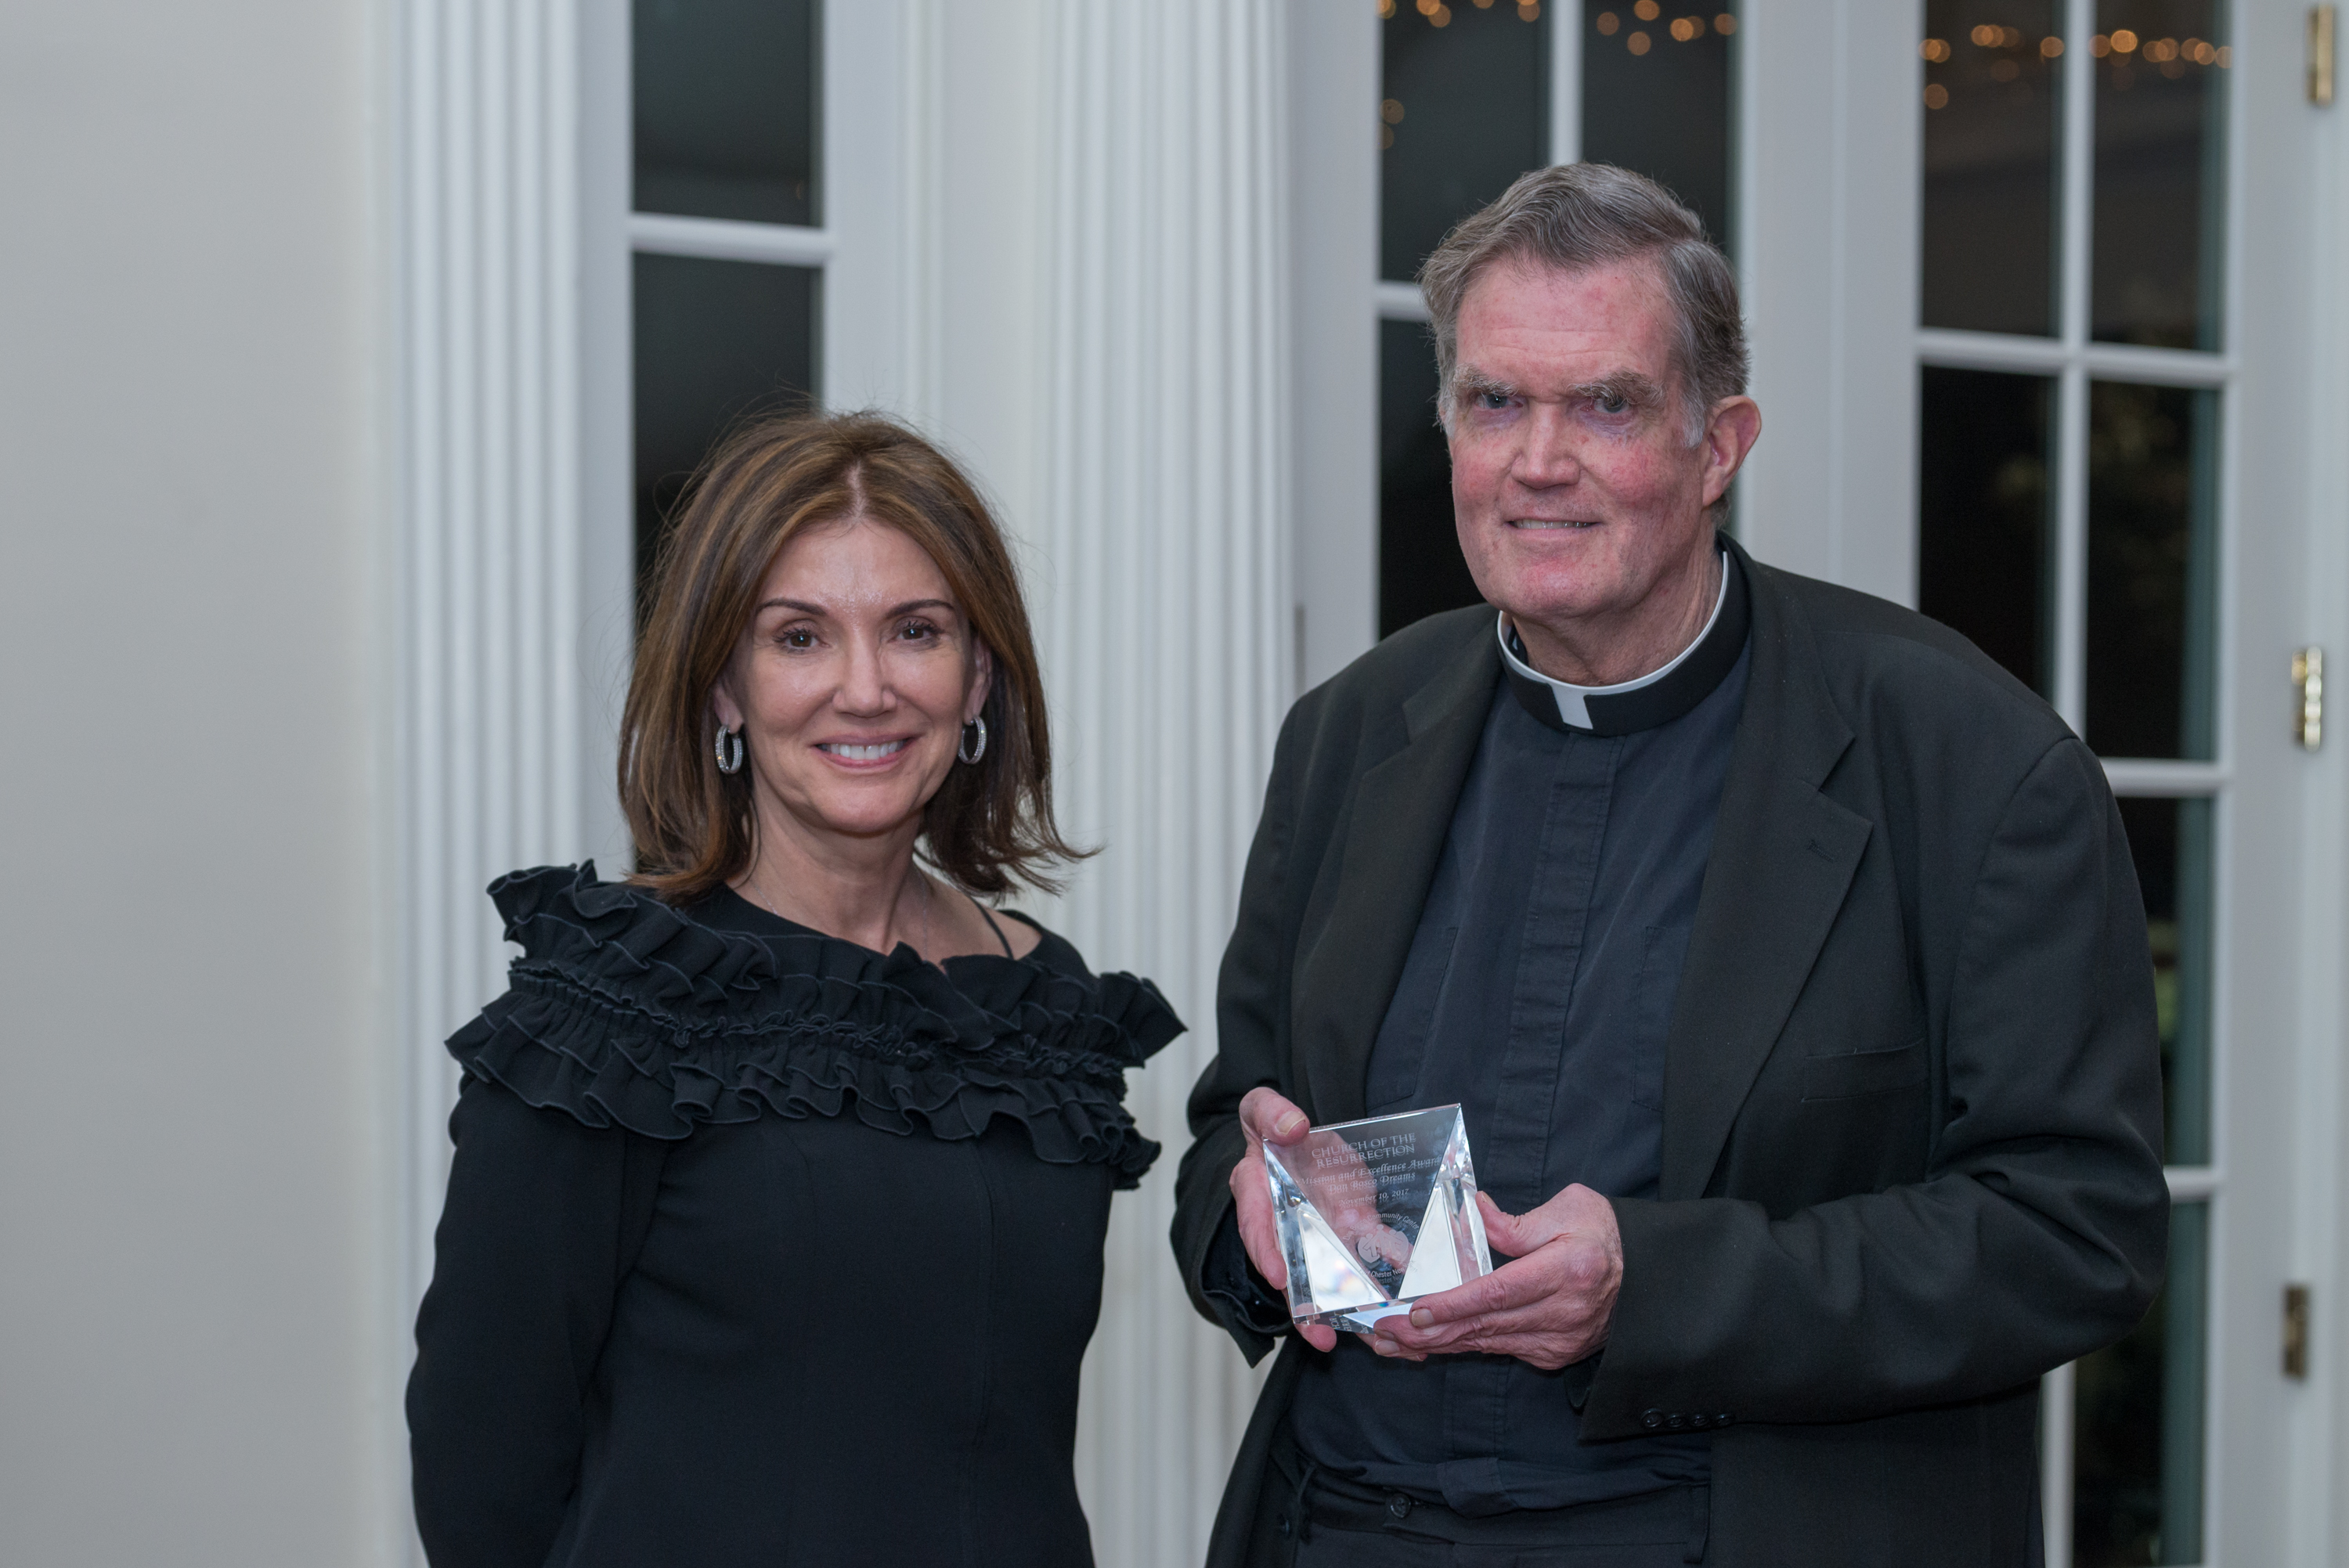 Msgr. Donald Dwyer, Pastor, Resurrection Church, Rye, NY, Mission and Excellence Award, presented by Ann Heekin